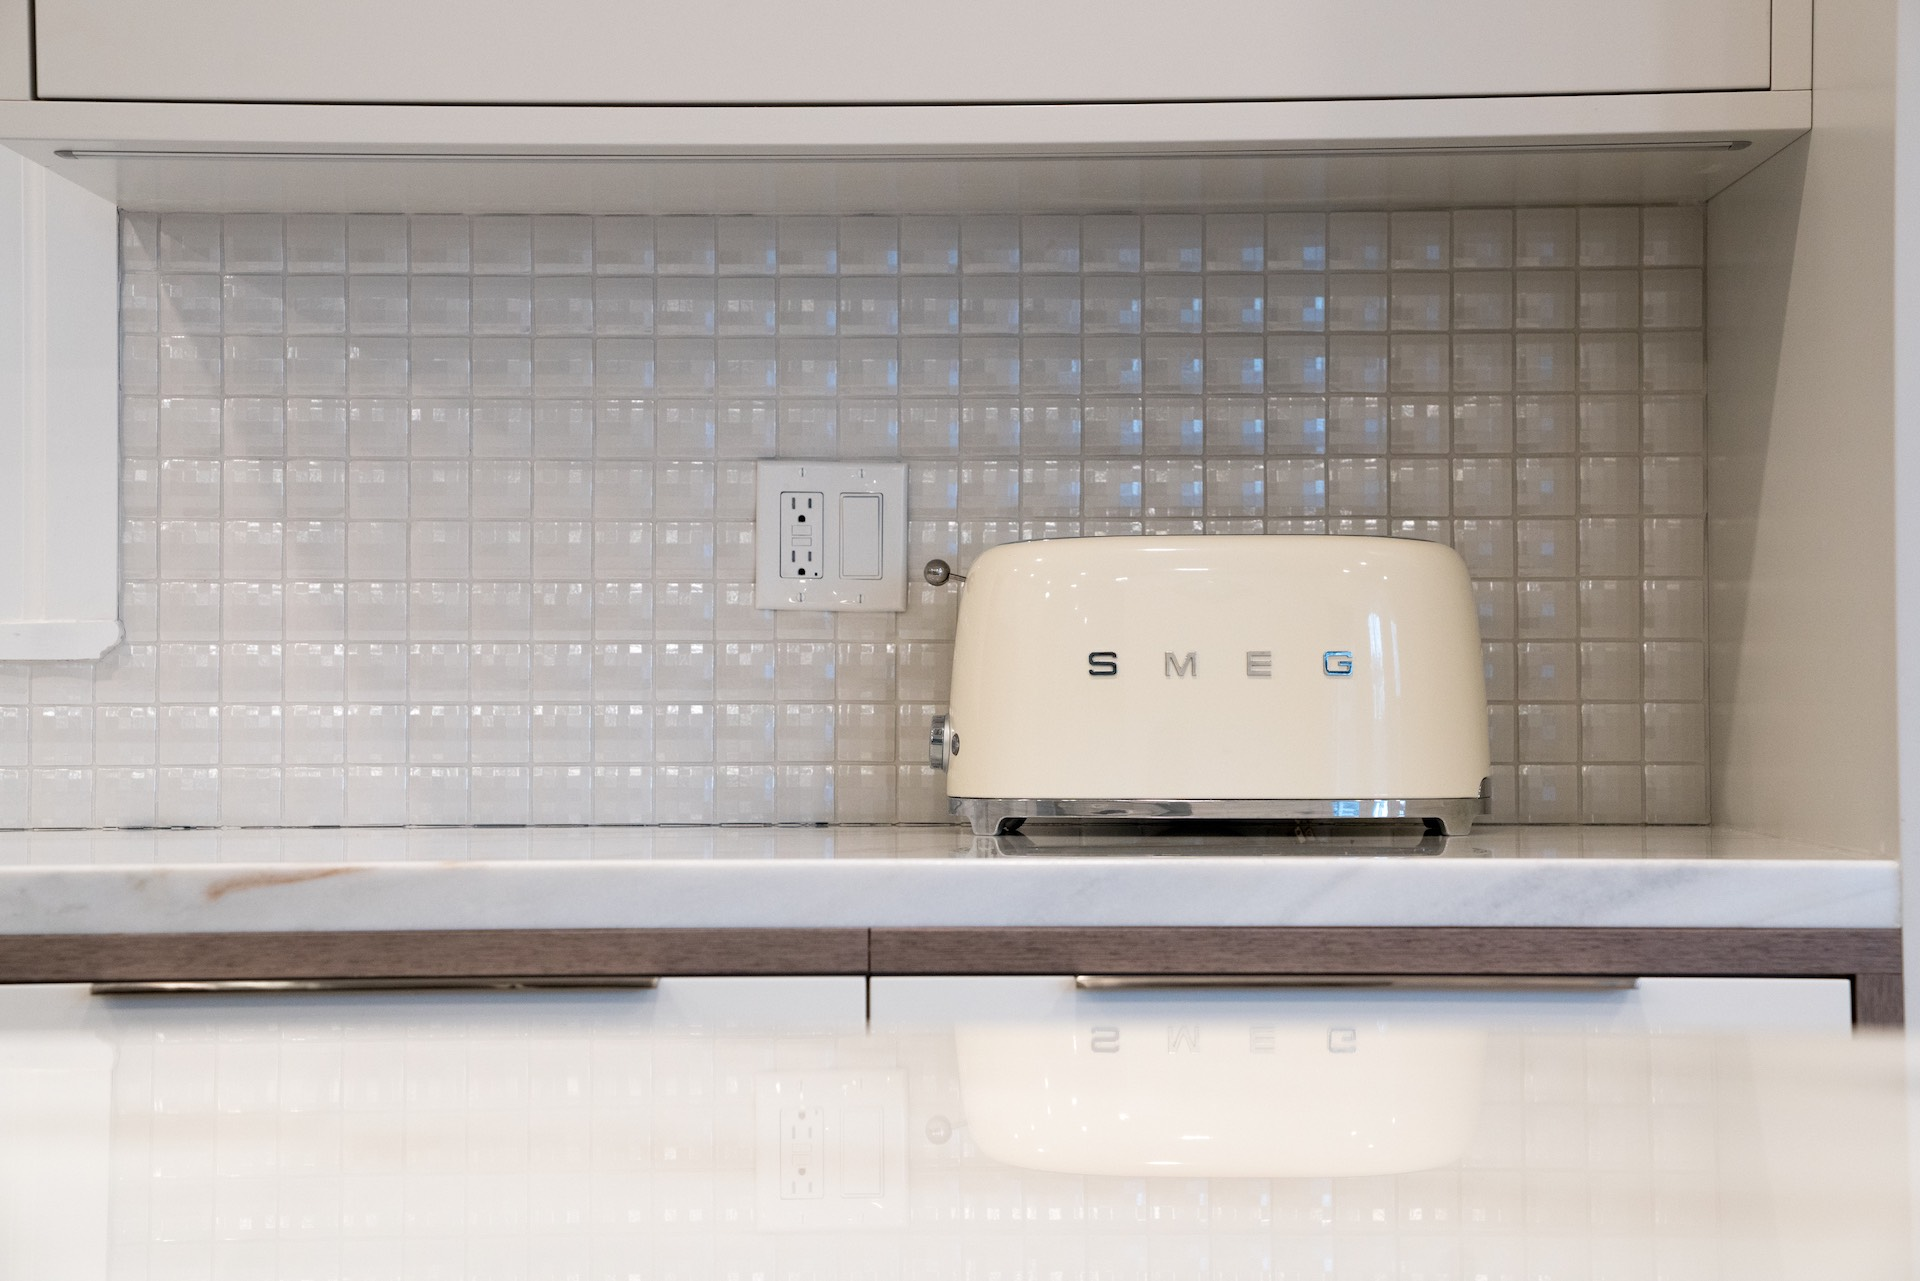 kitchen counter with toaster